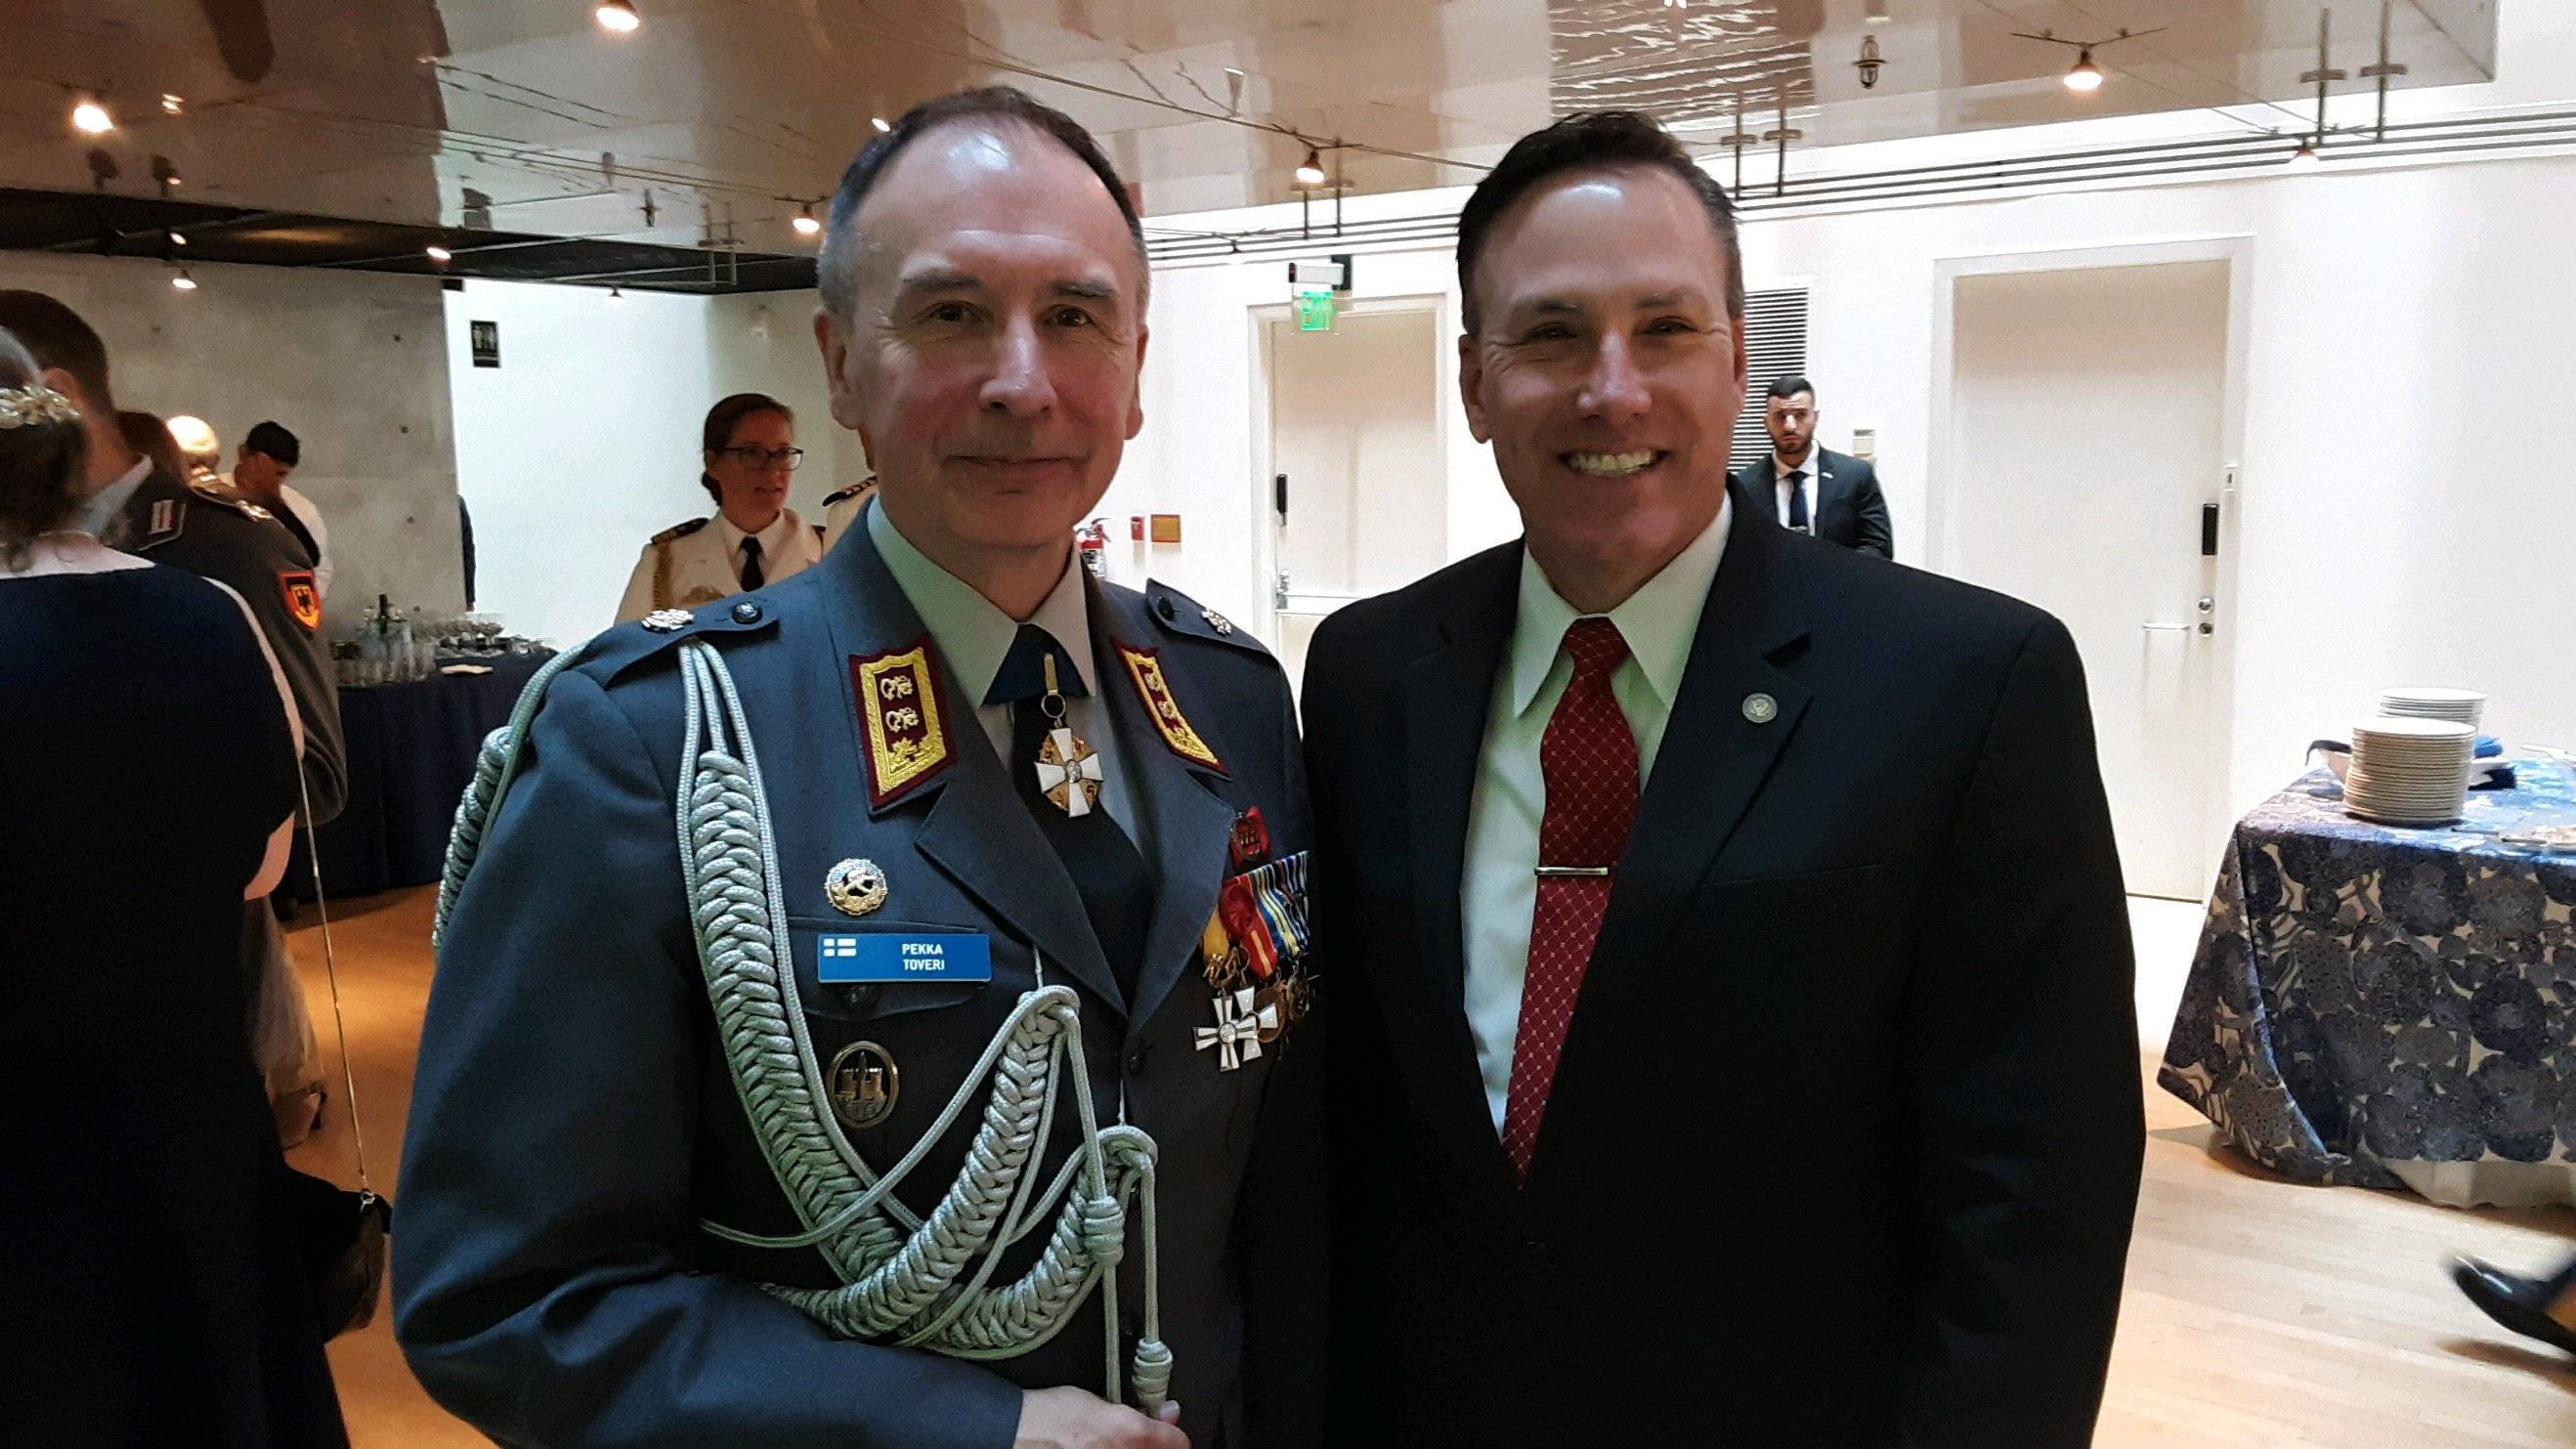 MG Pekka Toveri and IWP SVP Chris Glass